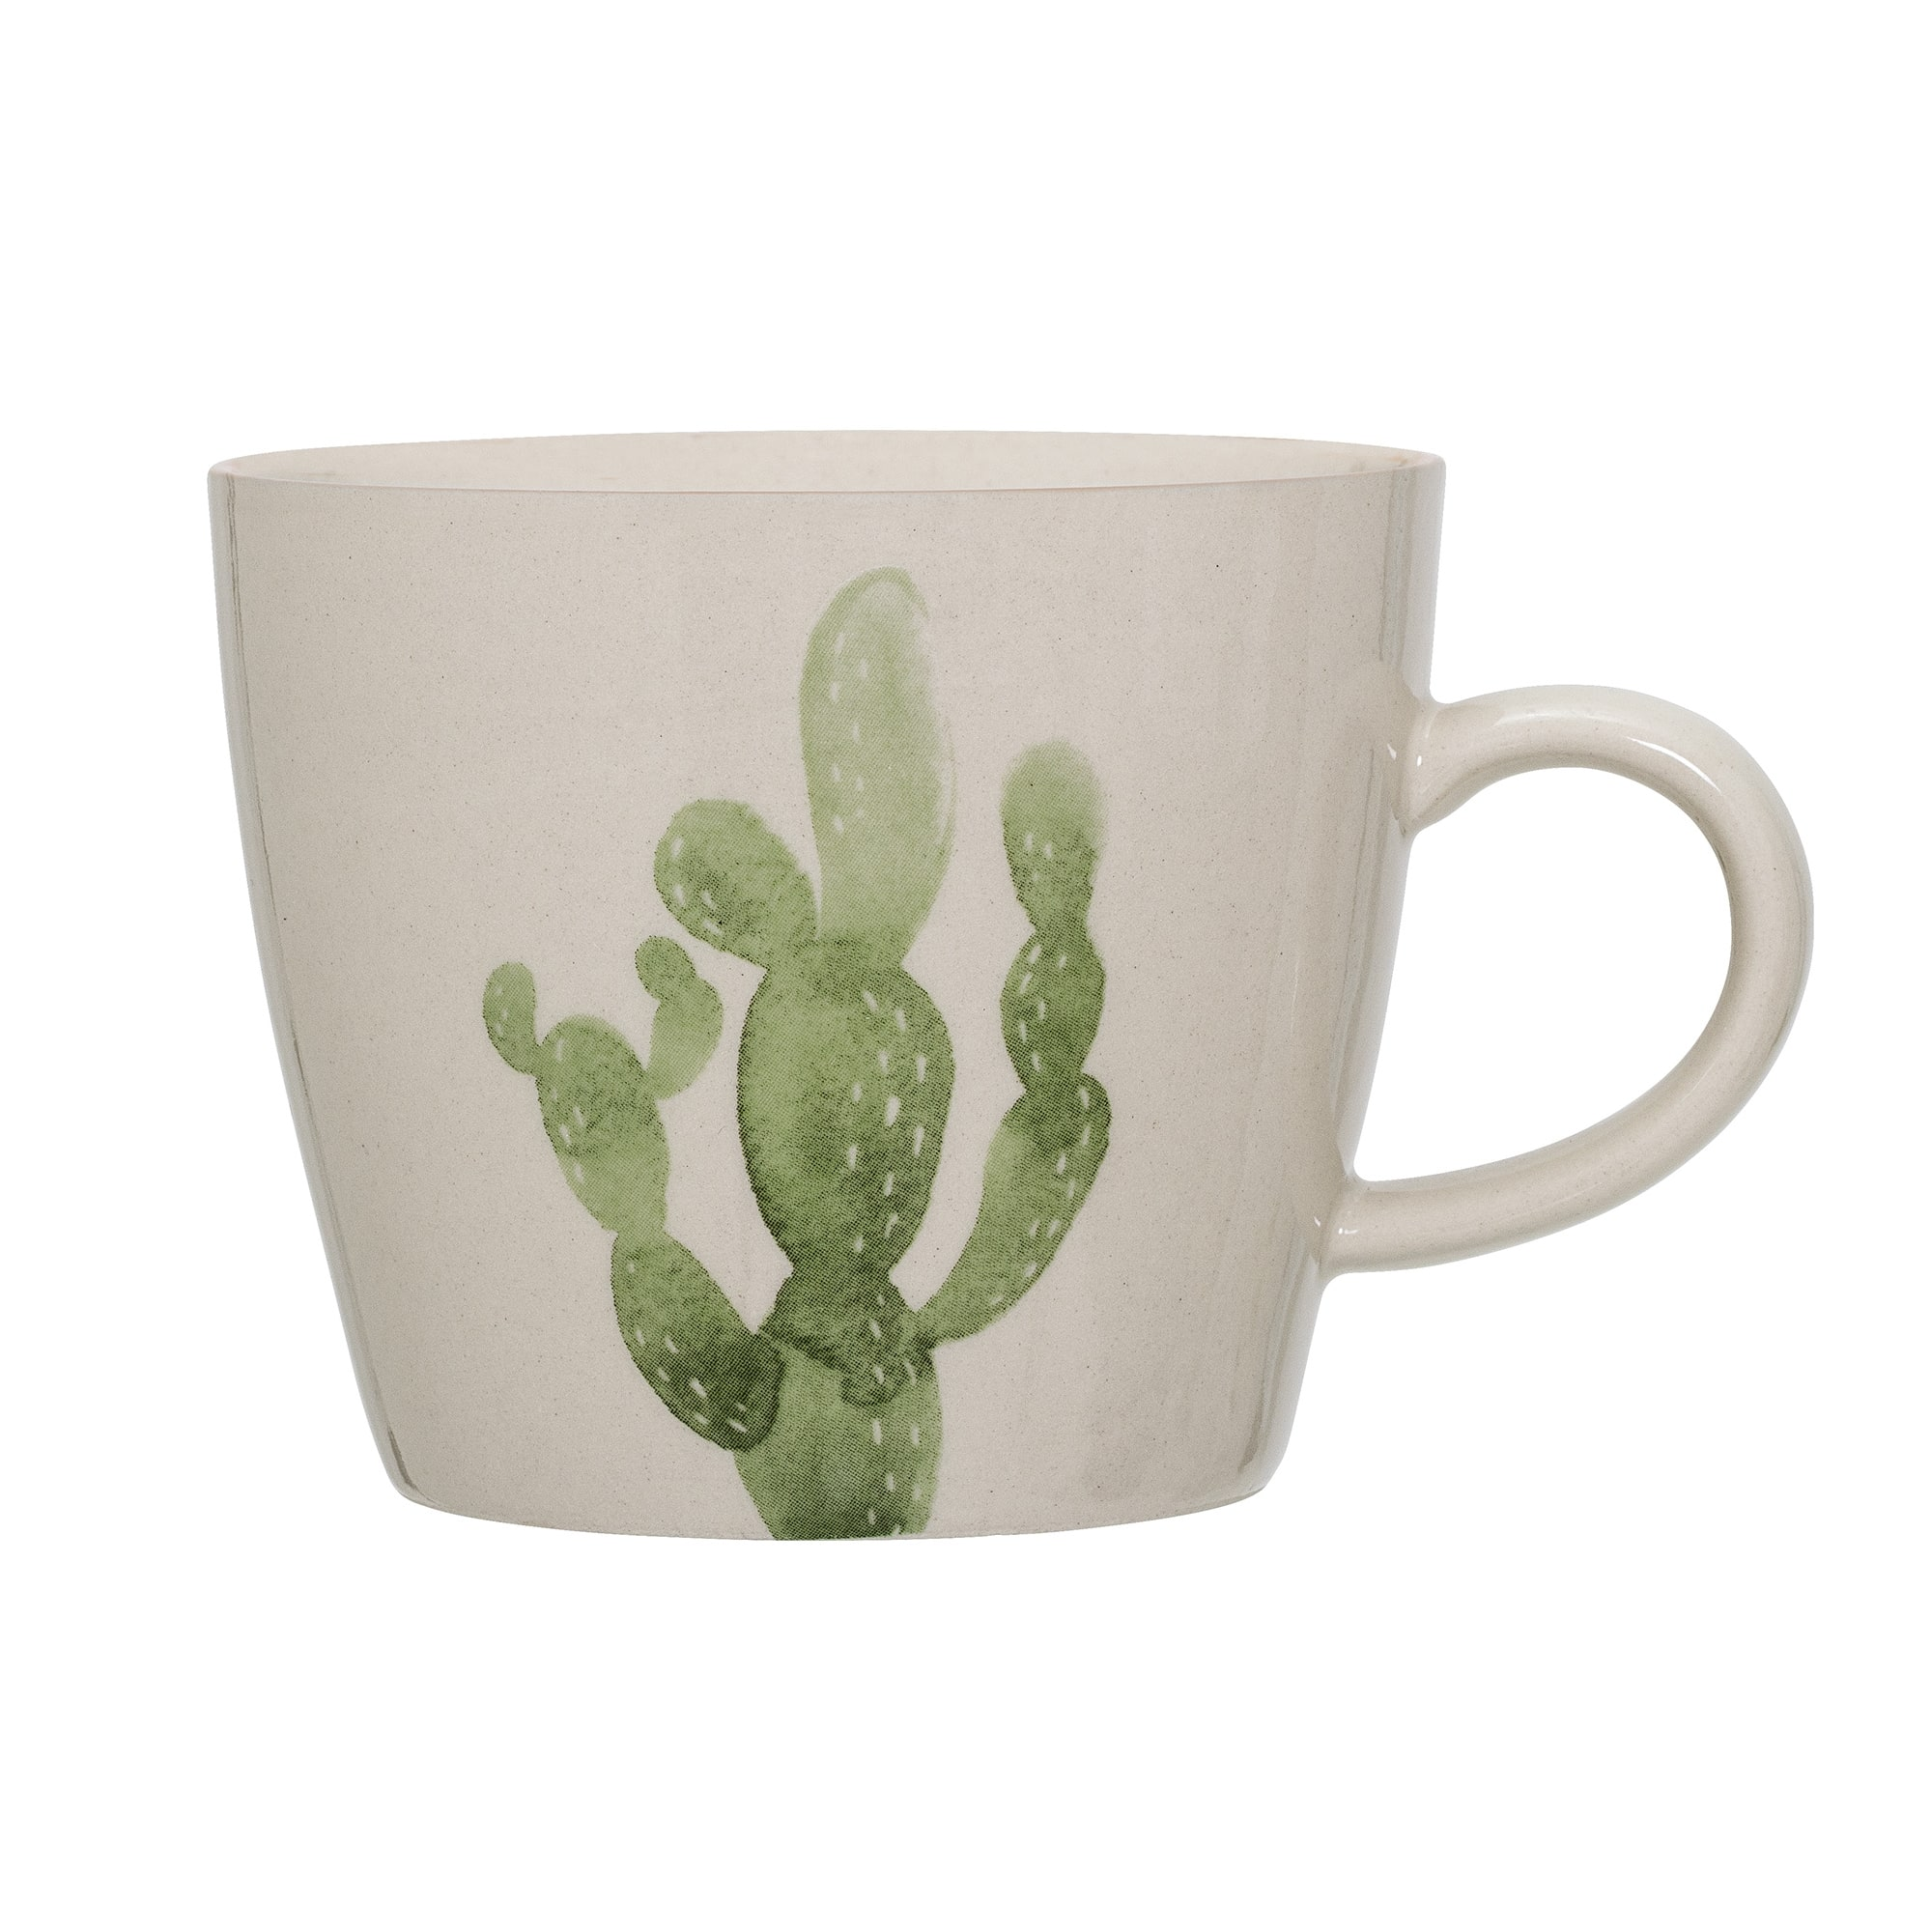 tasse avec anse cactus jade bloomingville jolies babioles. Black Bedroom Furniture Sets. Home Design Ideas